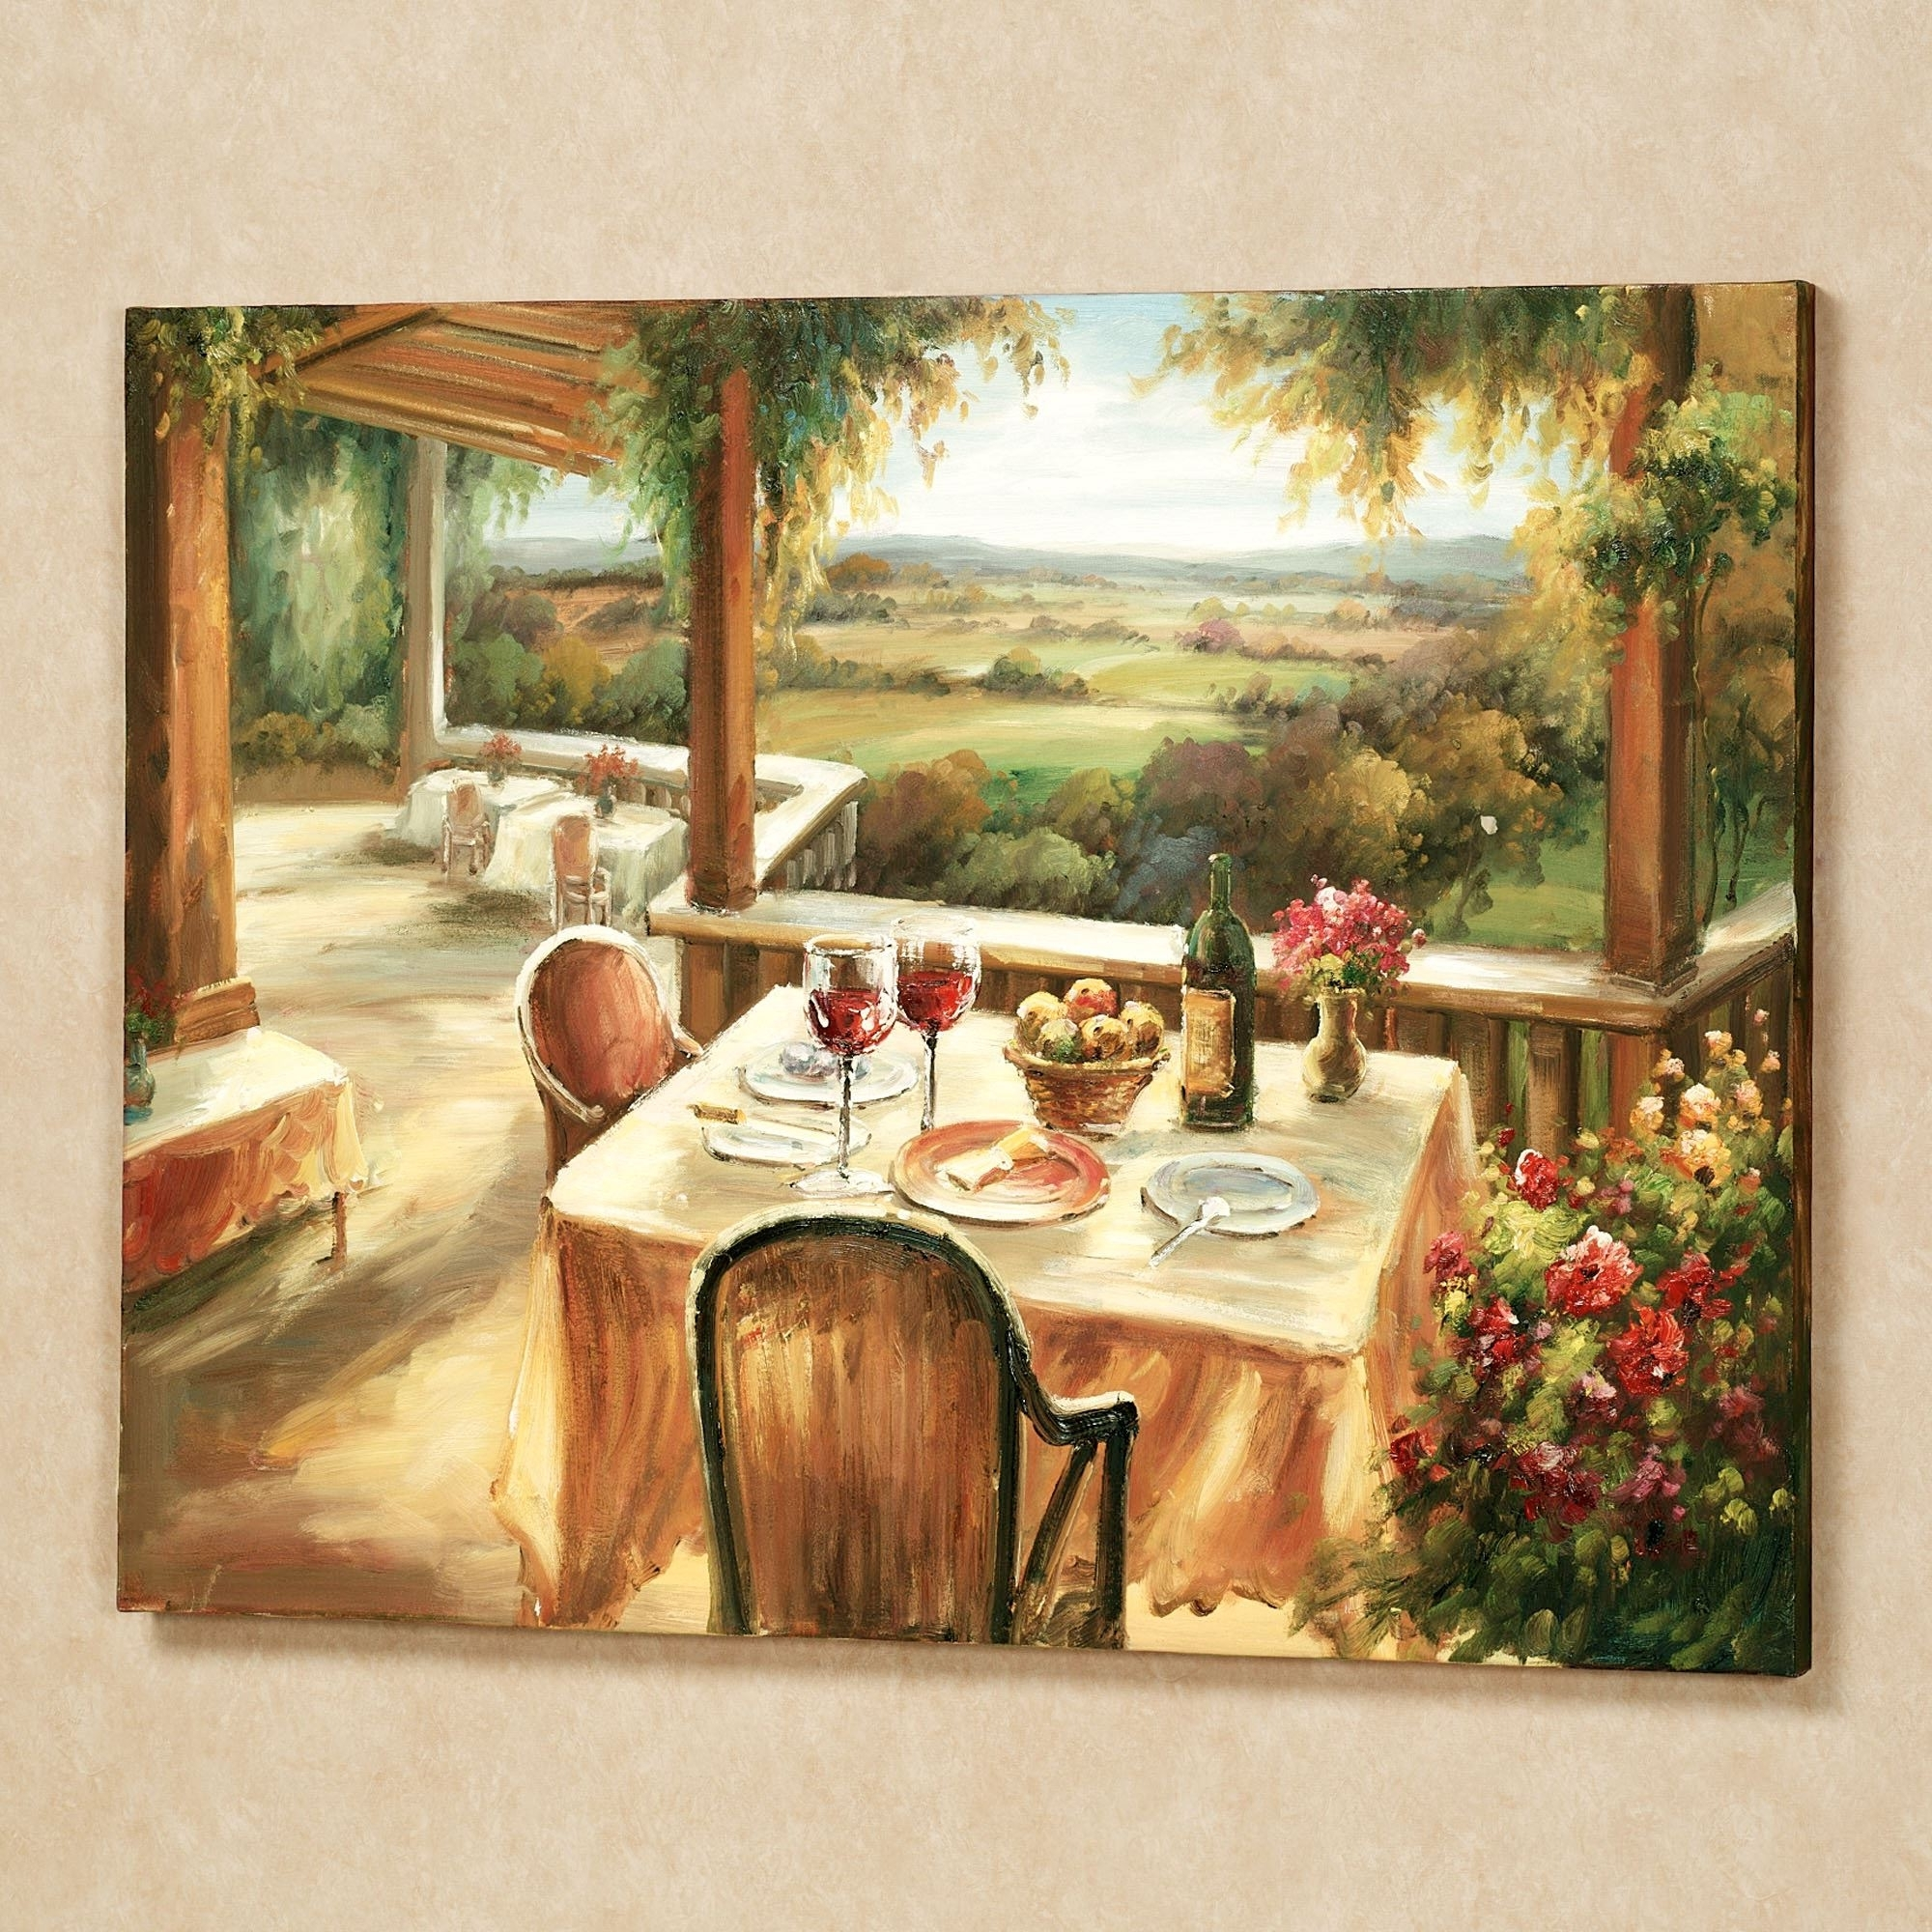 Preferred Wine And Dine Canvas Wall Art Intended For Italian Wine Wall Art (View 12 of 15)